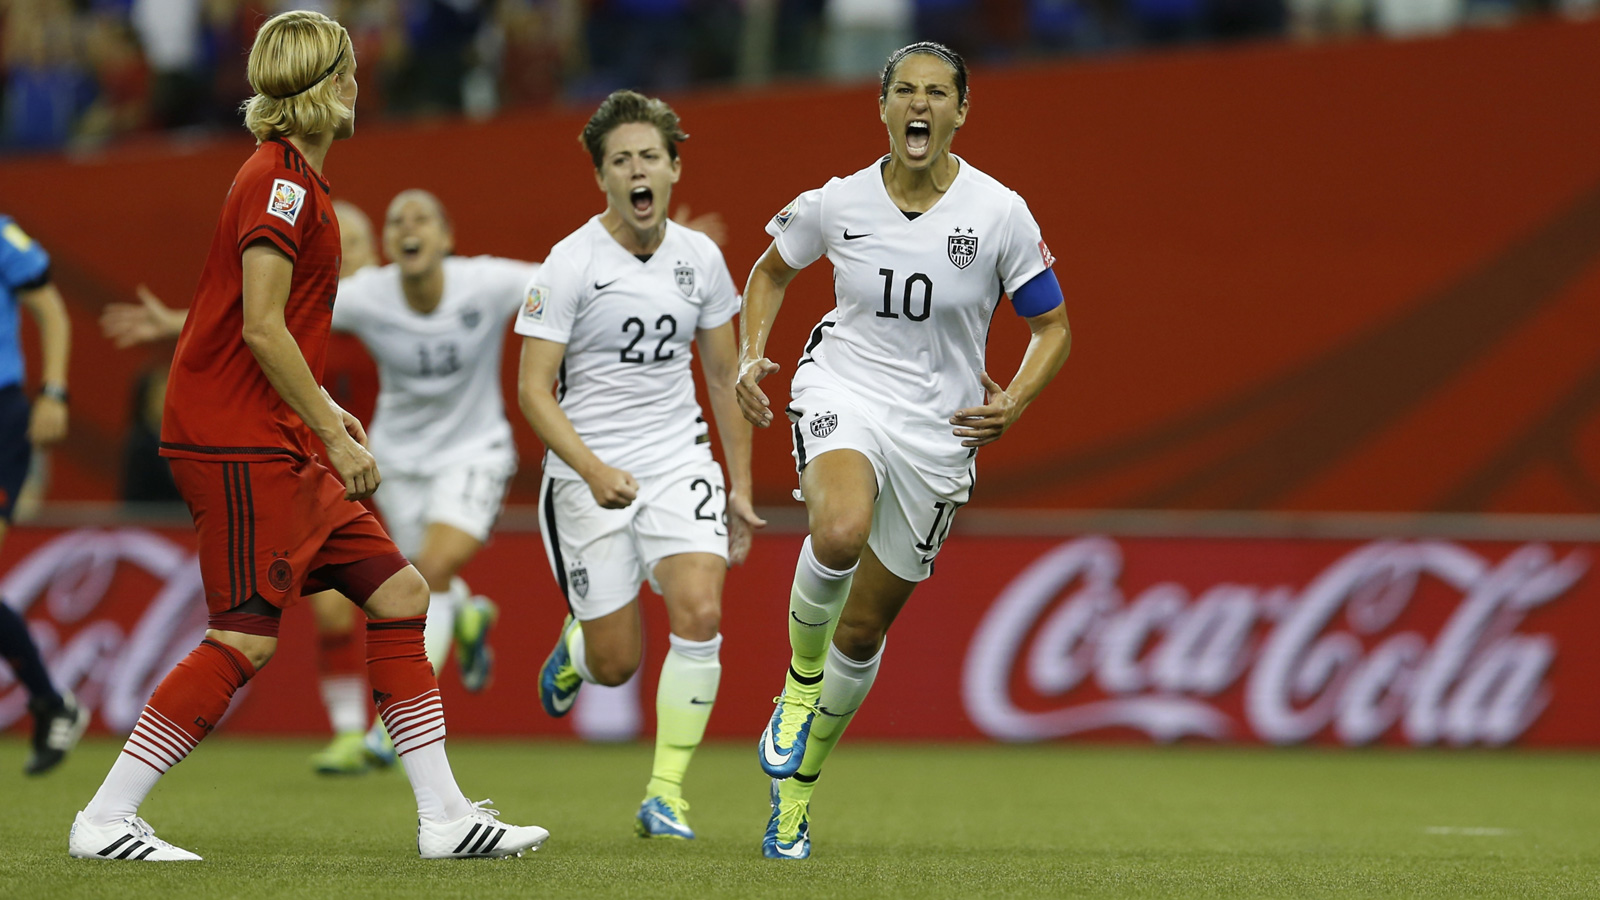 Carli Lloyd yells in celebration after scoring the penalty that put the USA up over Germany en route to a 2-0 victory in the Women's World Cup semifinals.